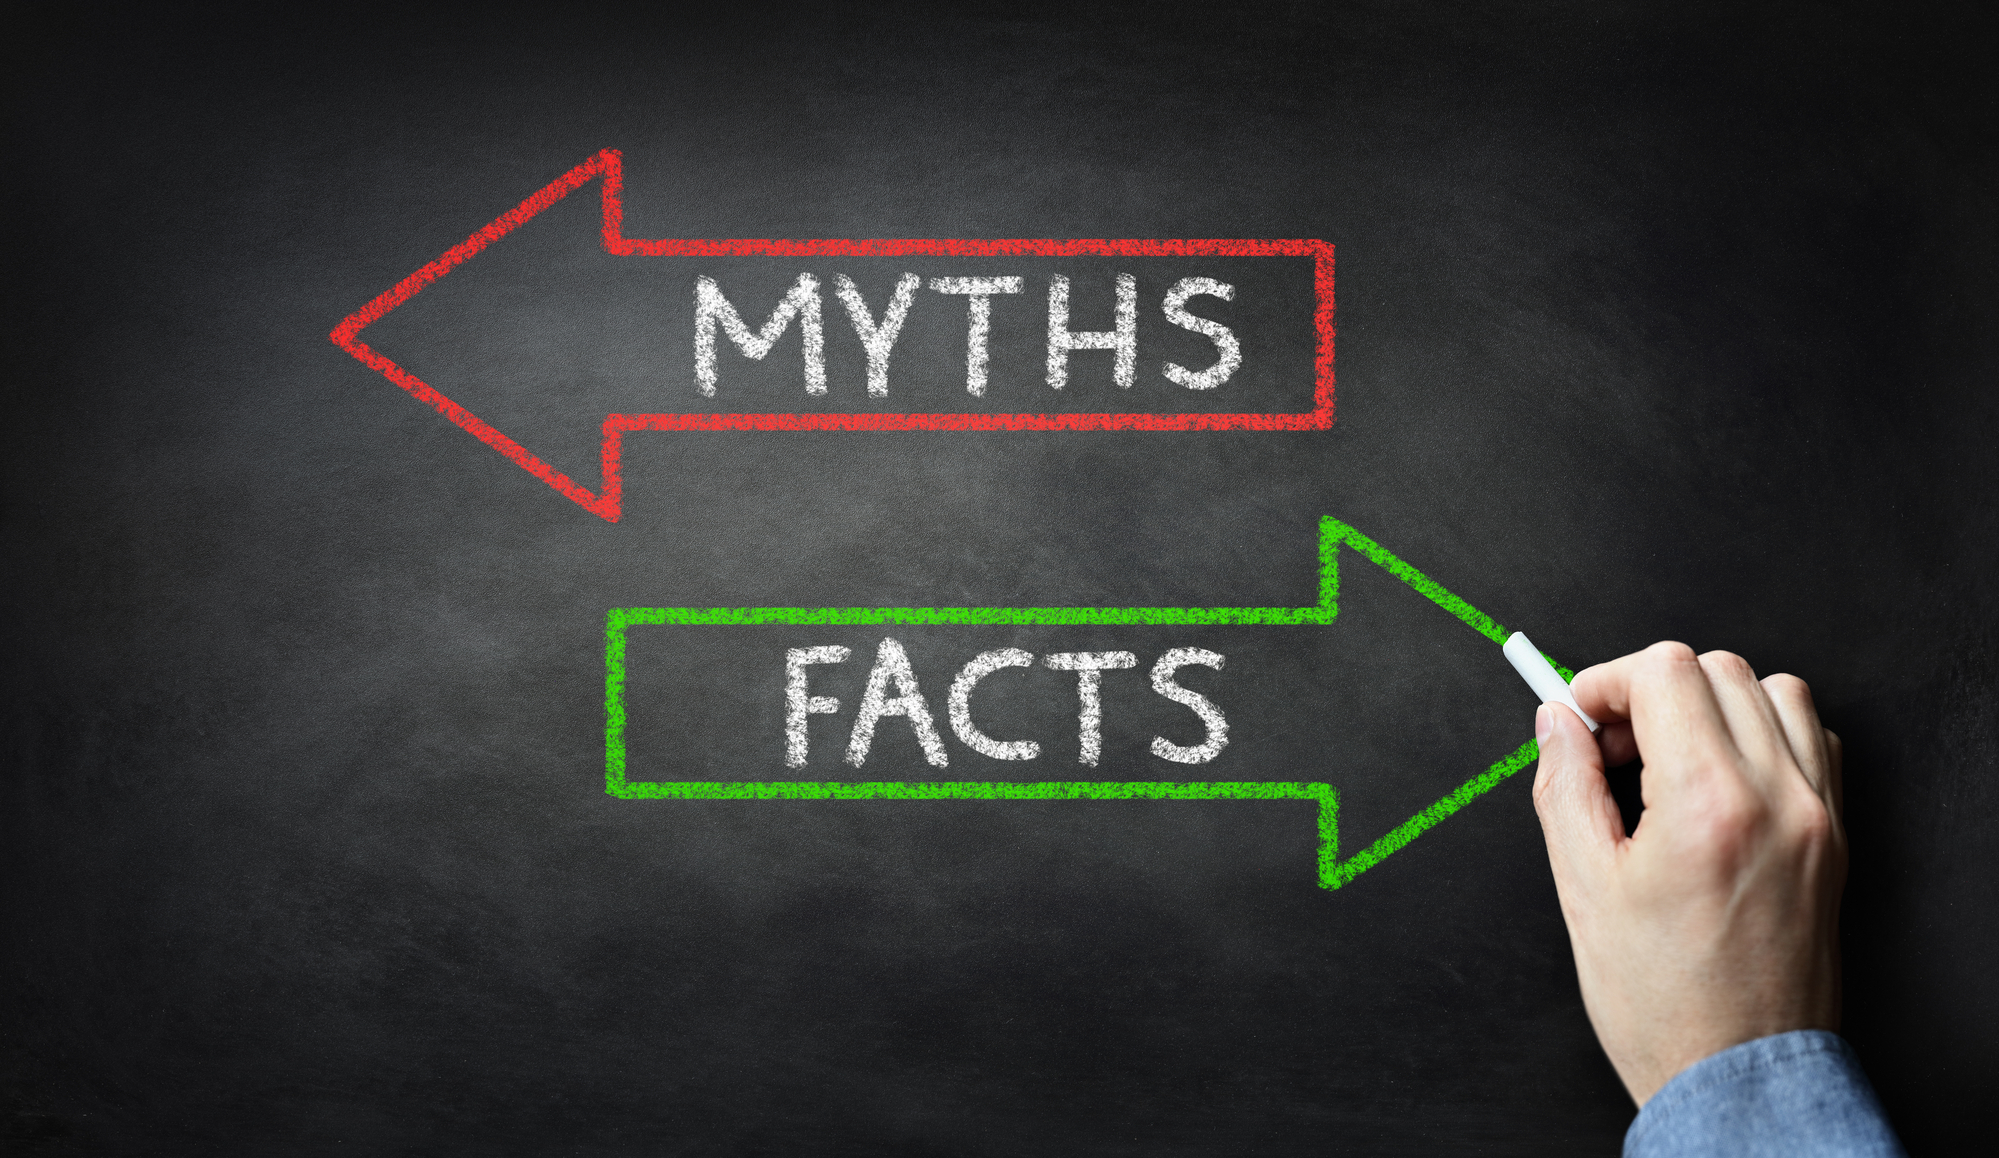 energy efficiency myths text